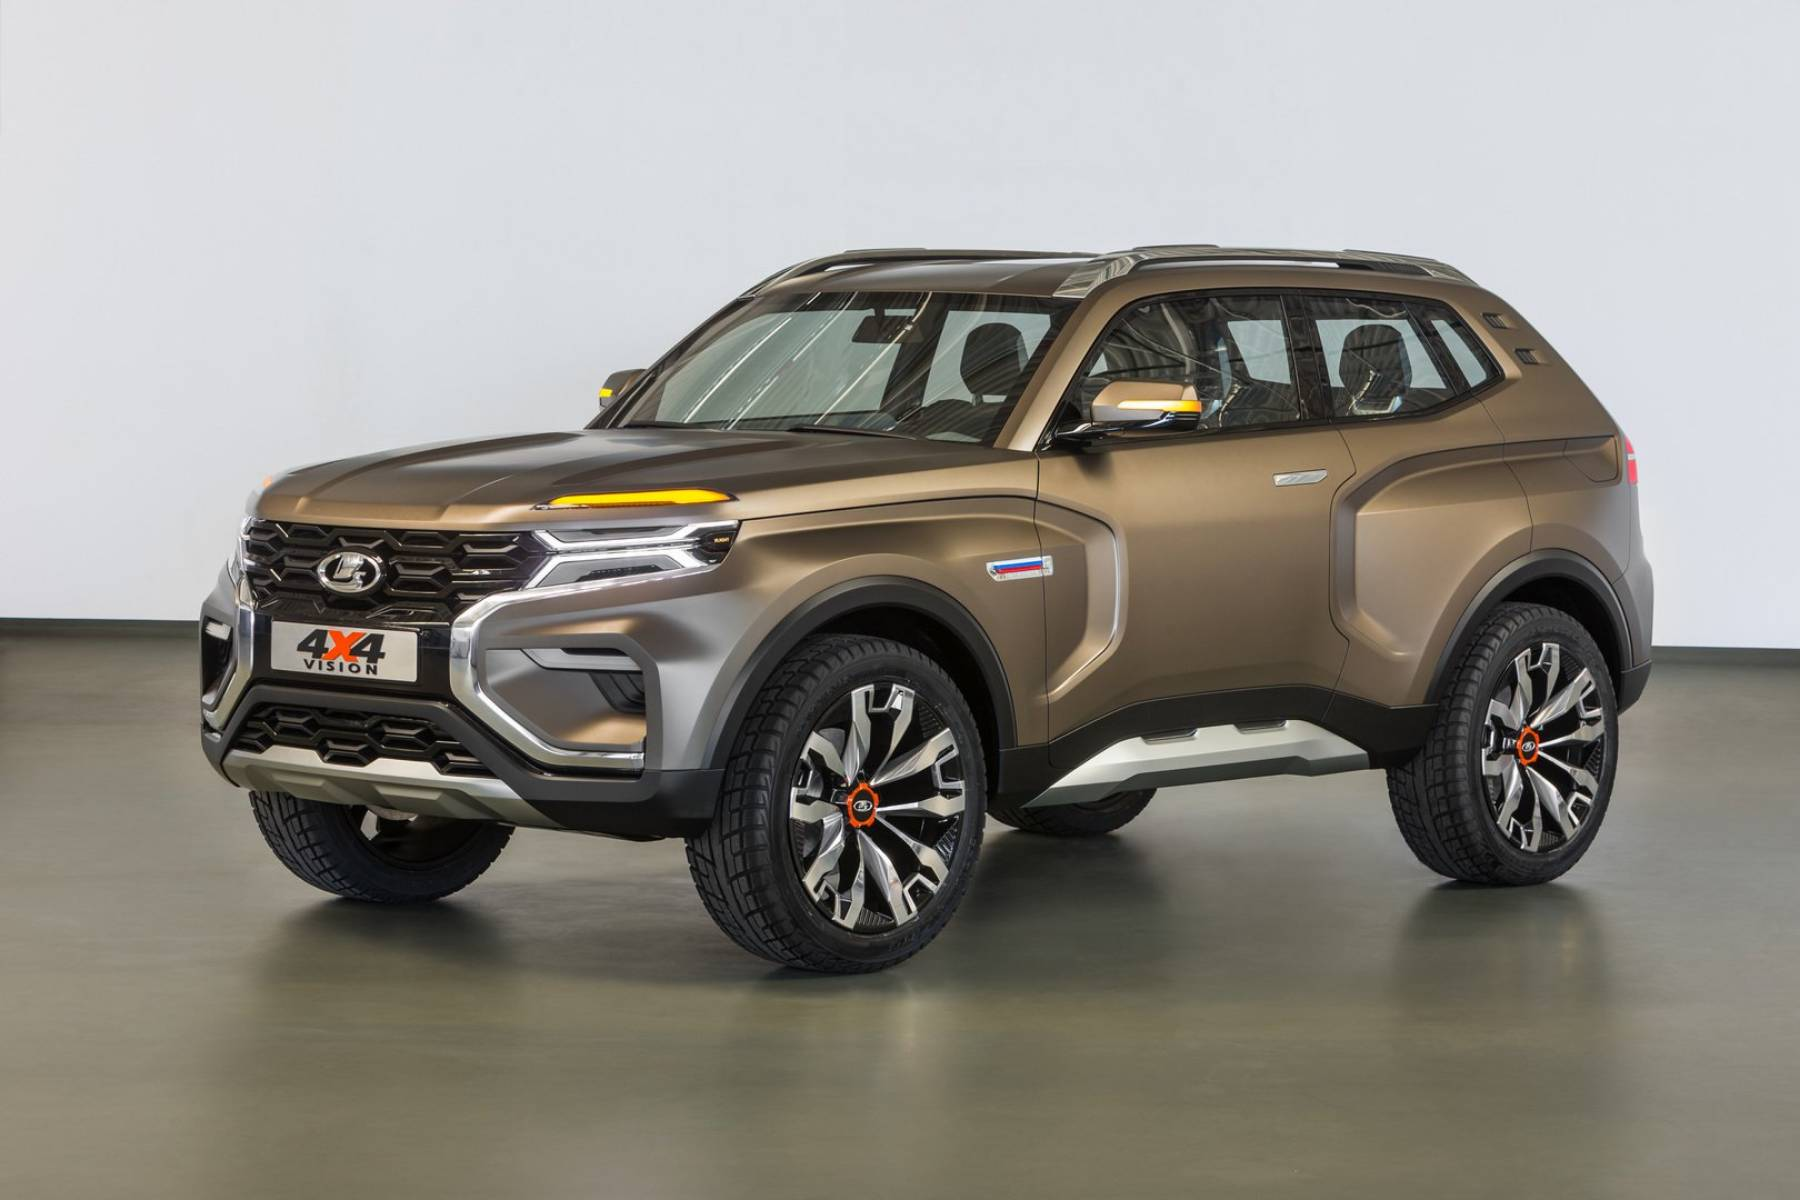 Ranger Rover 2018 >> Lada 4x4 Vision Concept could preview a new Niva | Motoring Research